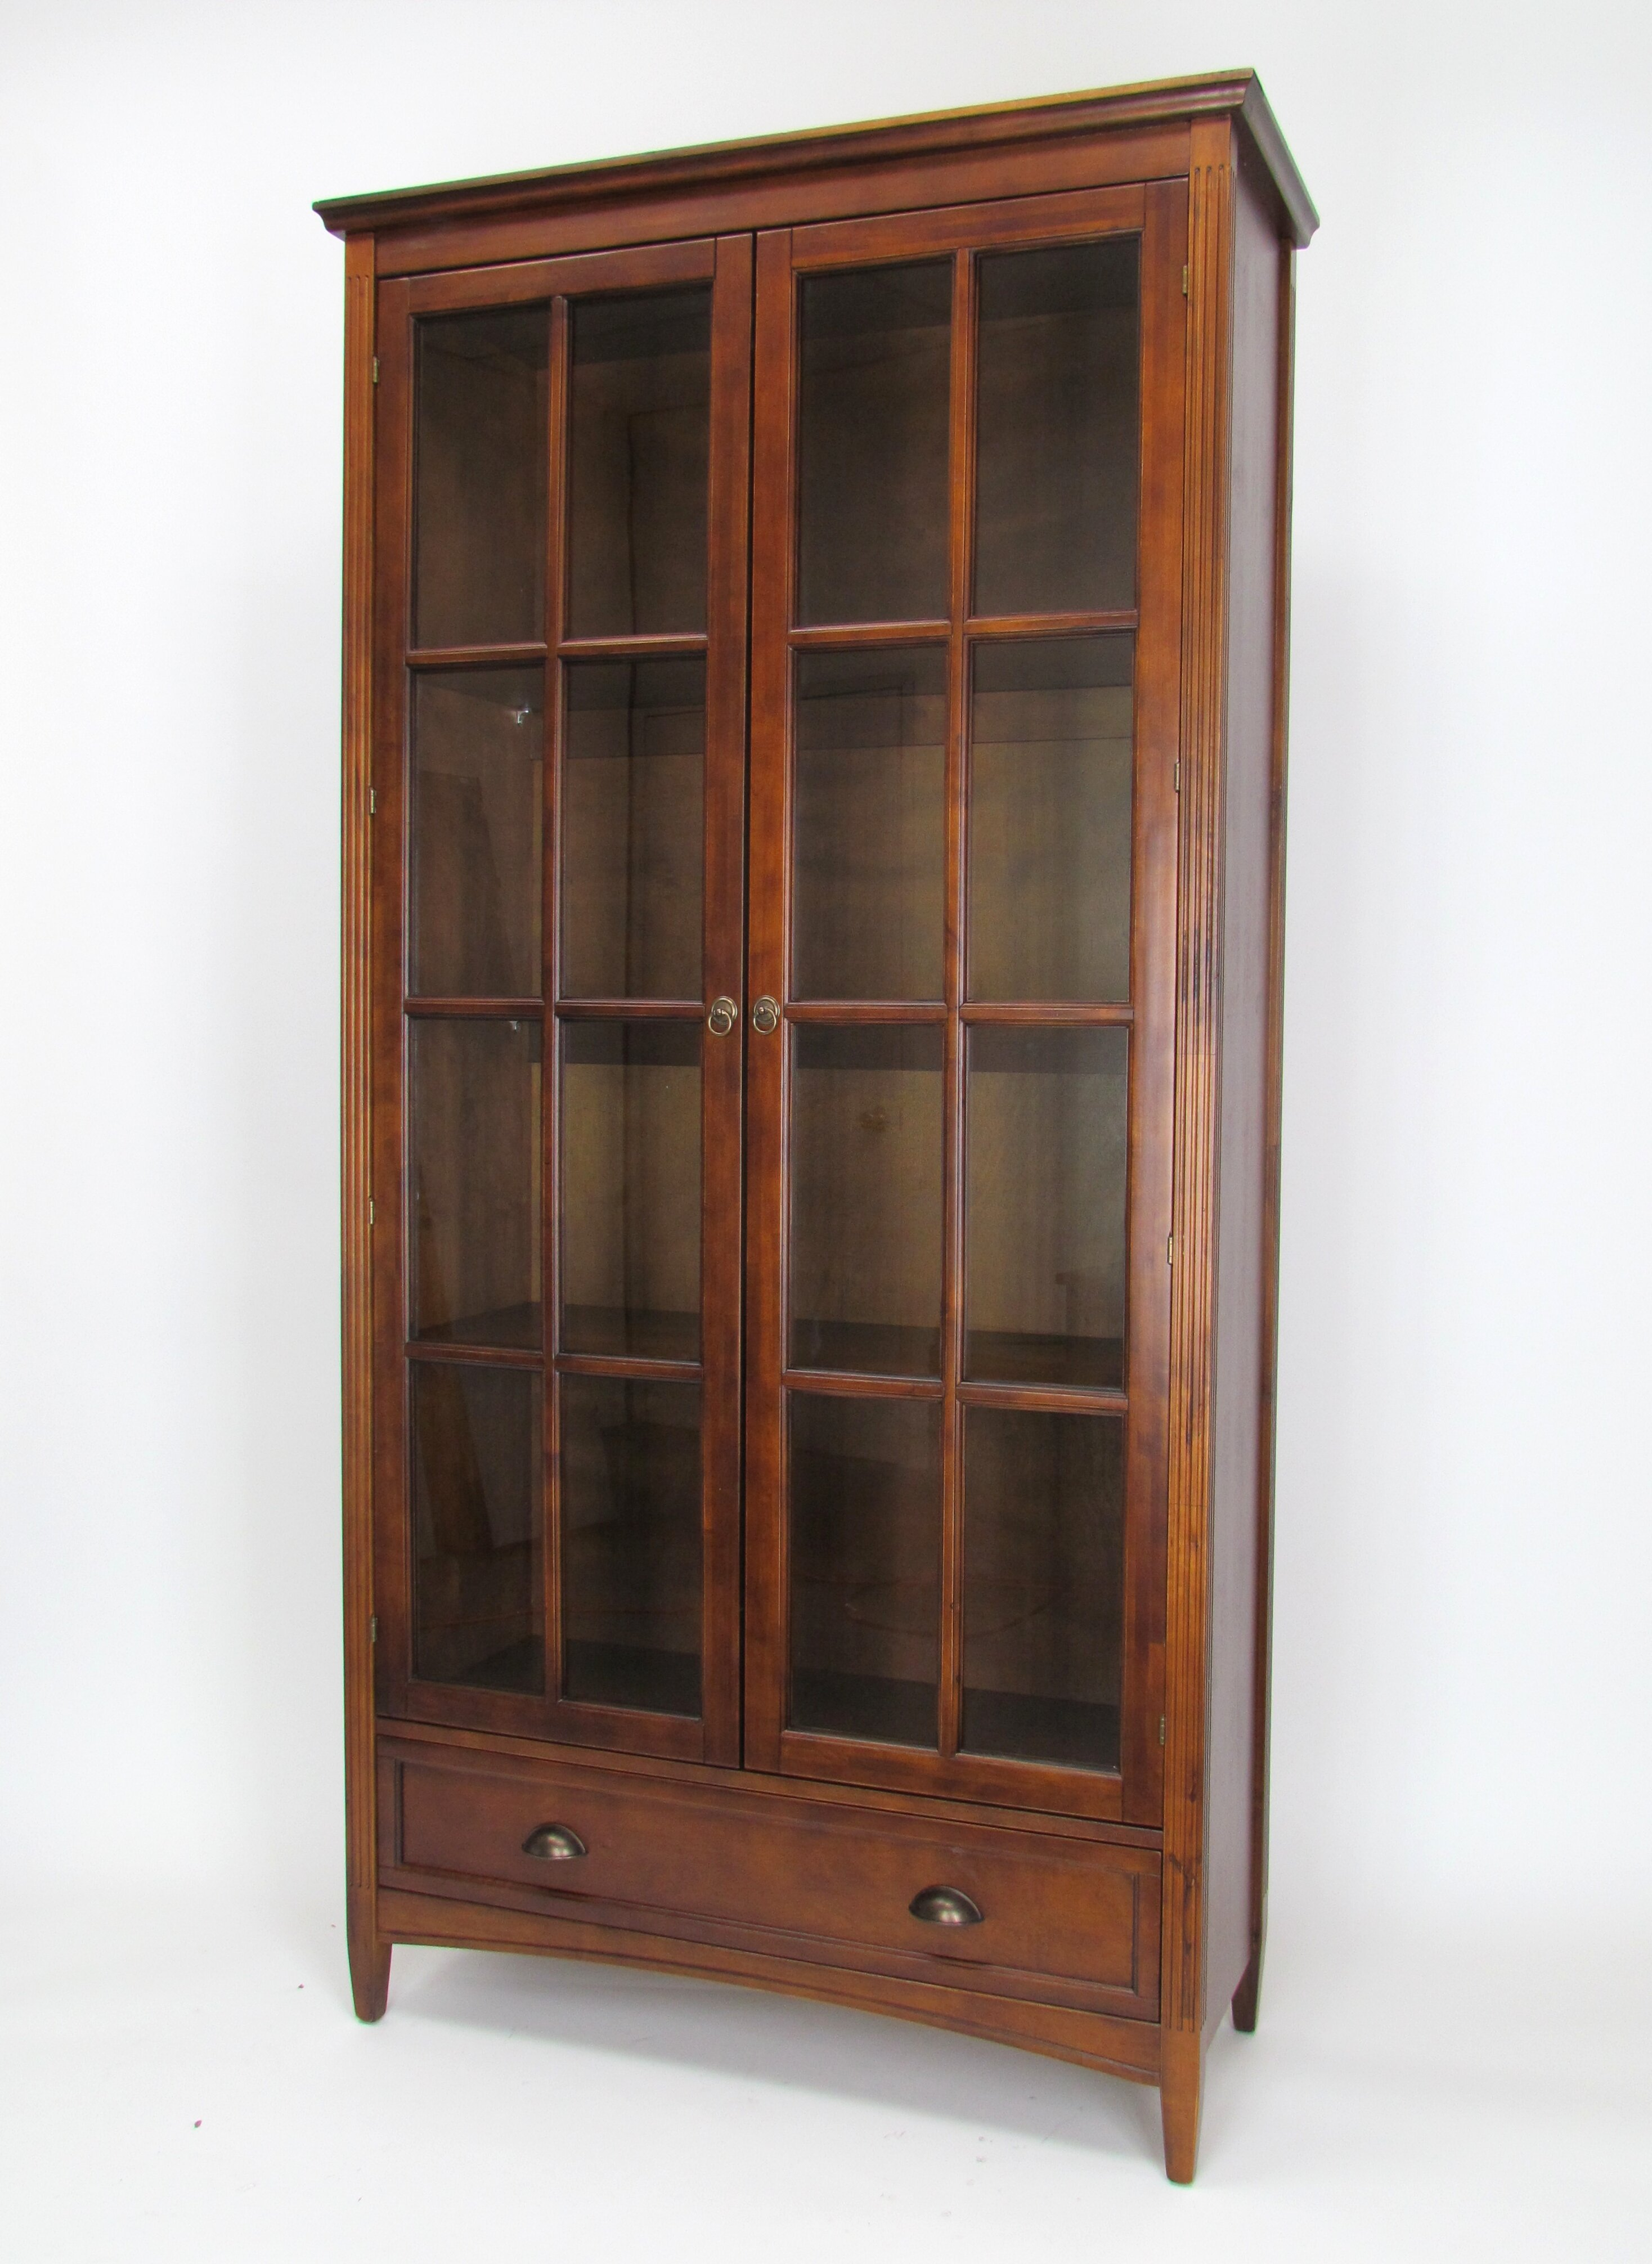 wooden rose narrow bookcases cadmium enclosed door bookcase geometric rugs of small wall elegance glass bulgarian laminated orange barrister shelf full size area solid slidin